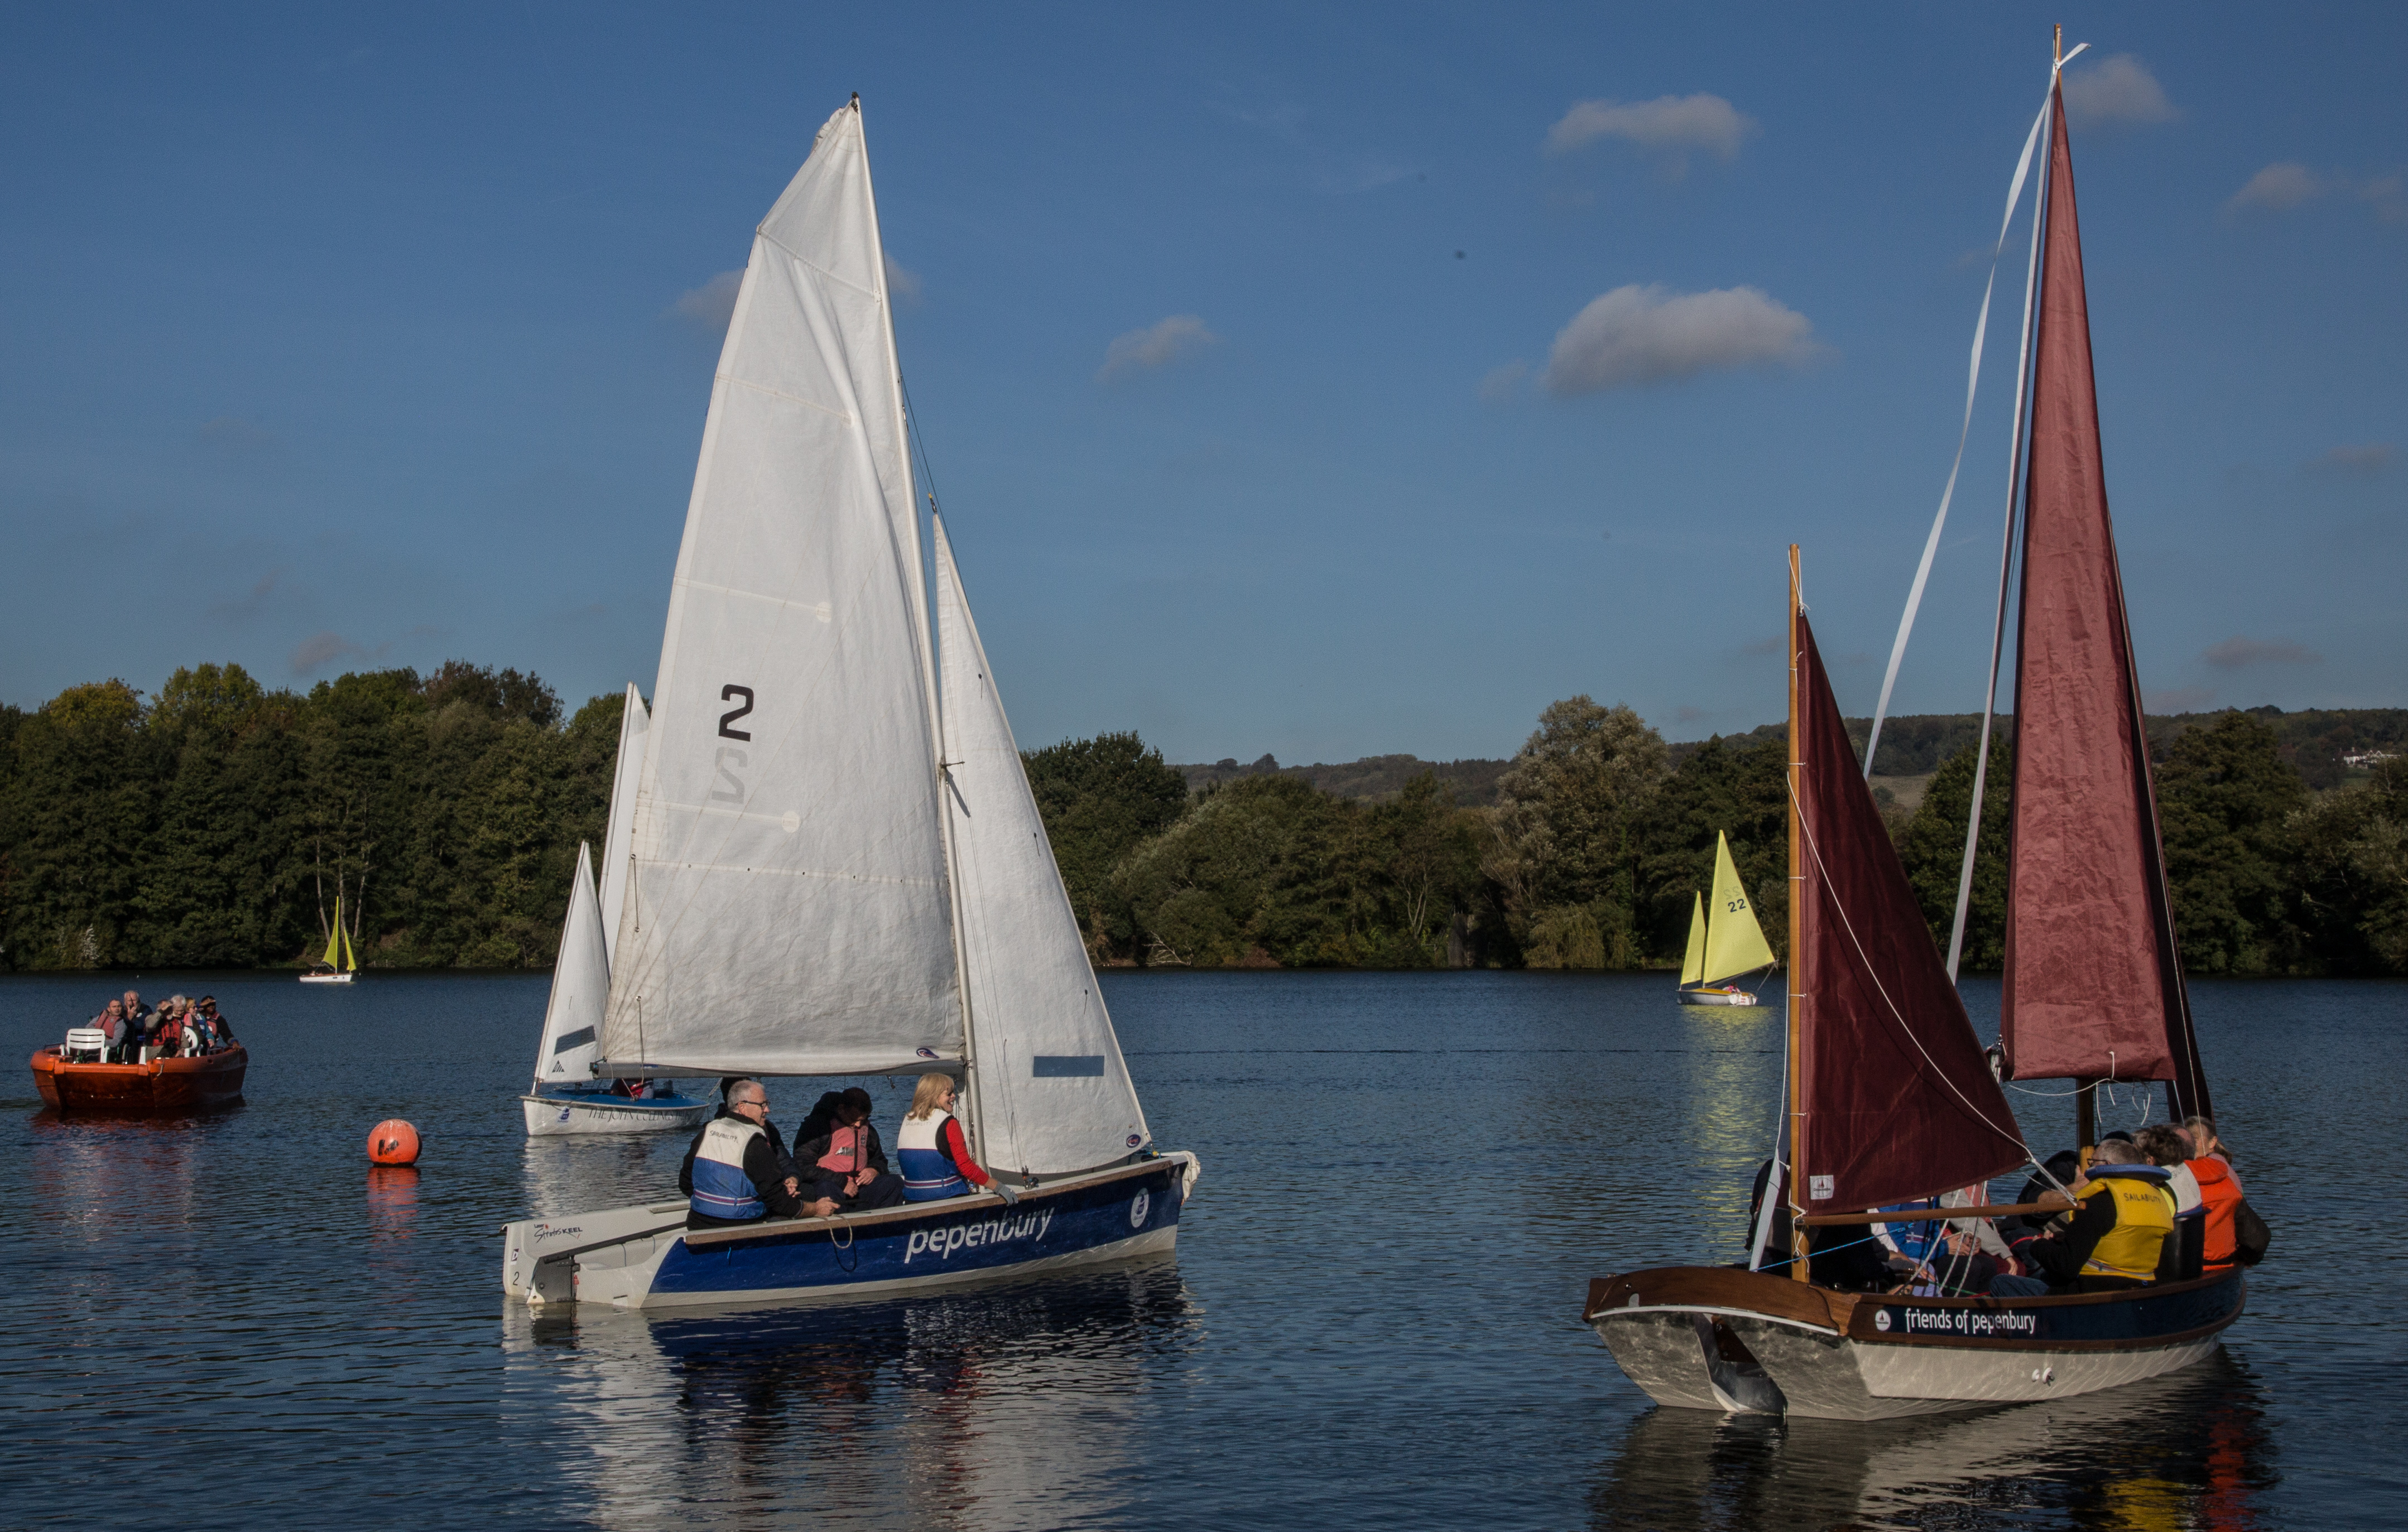 pepenbury old and new sailing together